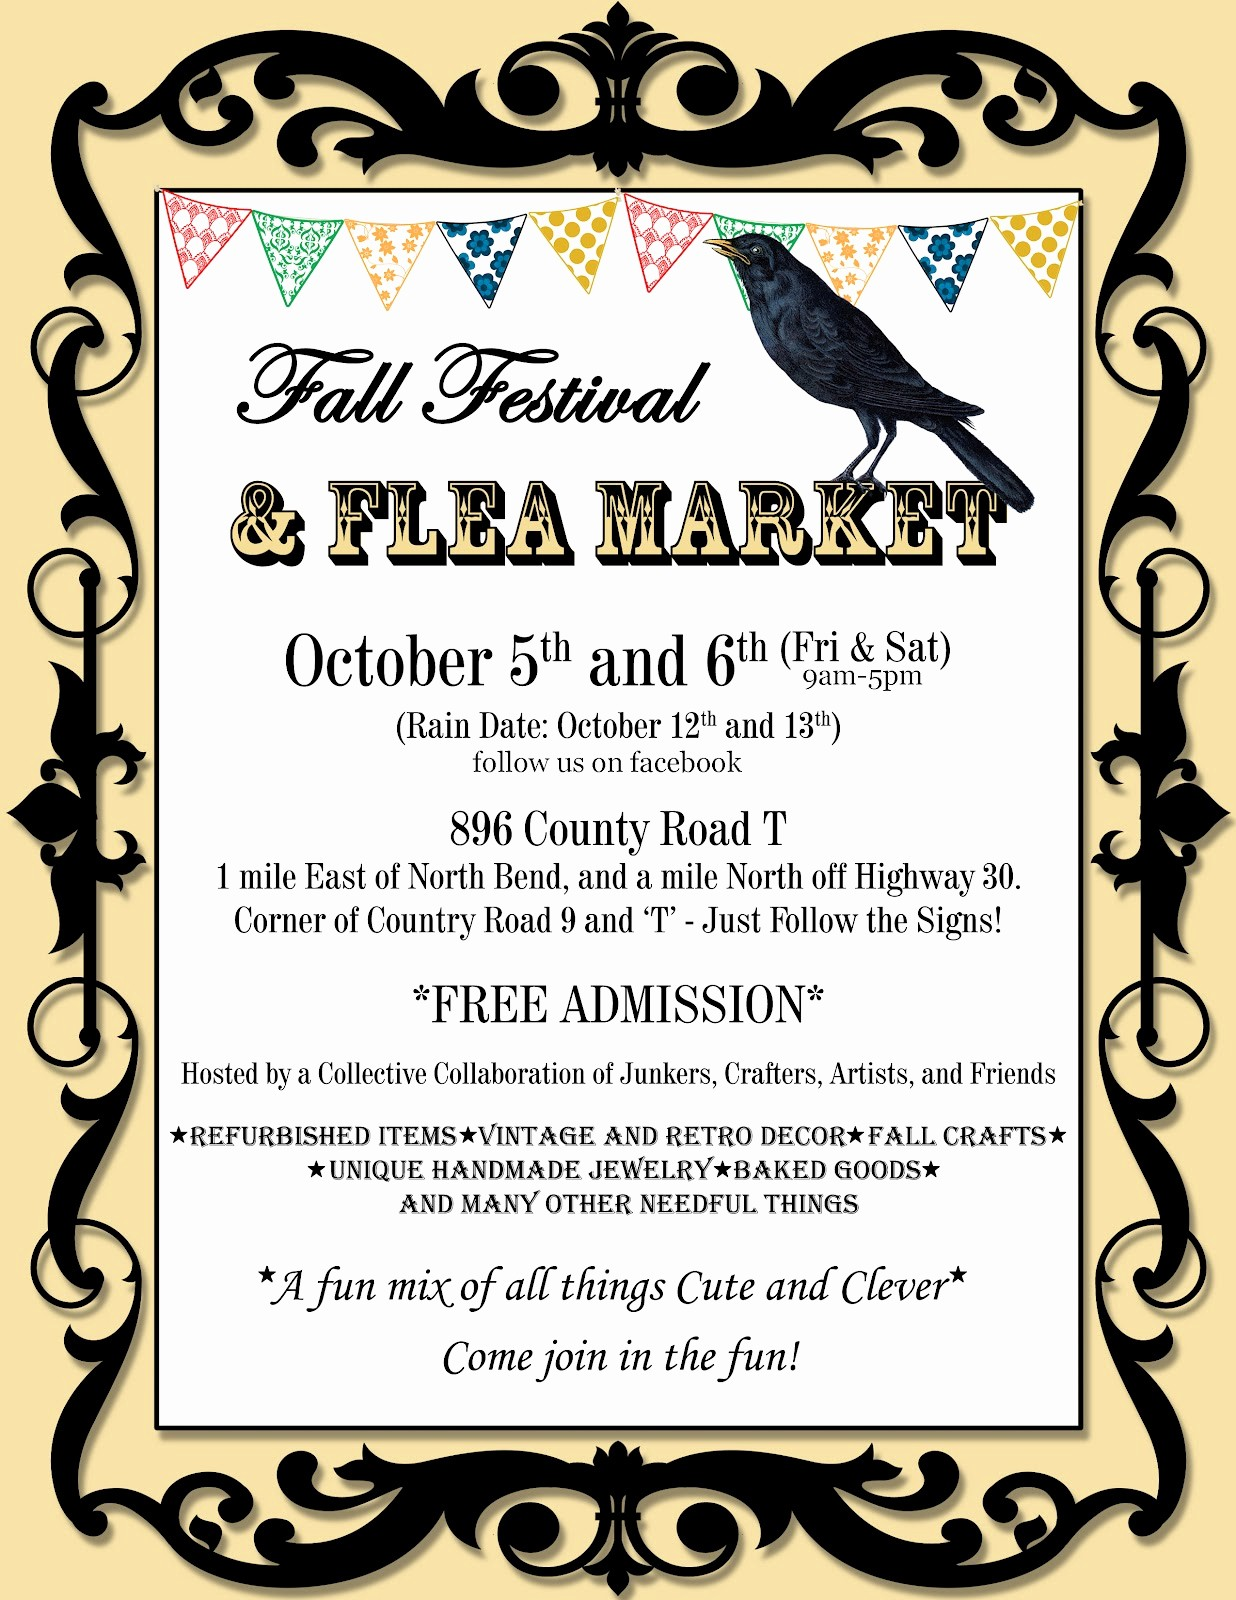 Flea Market Flyer Template Free Best Of This Art that Makes Me Happy Halloween Crafts and